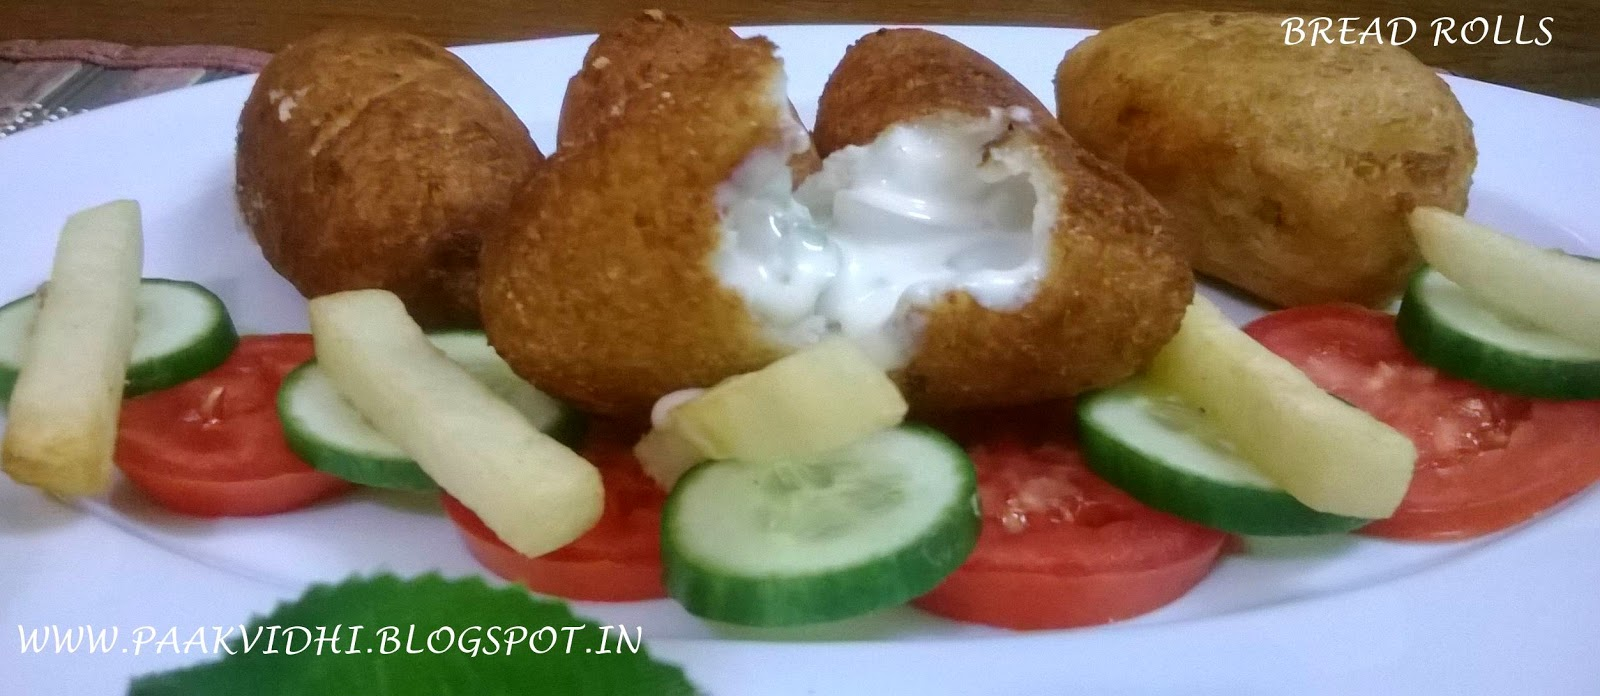 http://paakvidhi.blogspot.in/2014/06/cheese-corn-bread-rolls.html